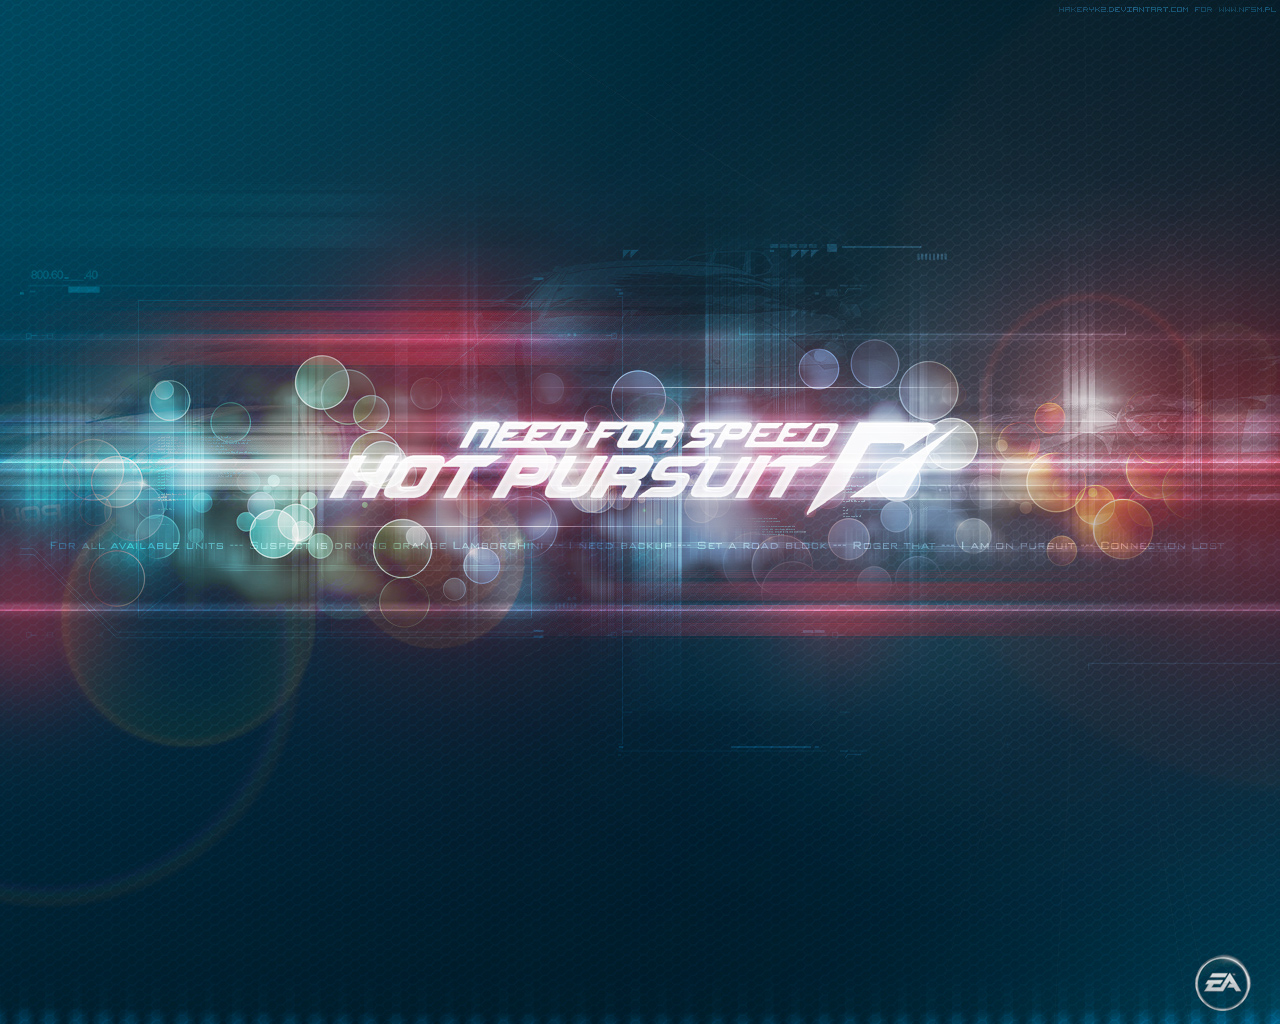 NFS Hot Pursuit (2010) wallpapers (38 Wallpapers ...